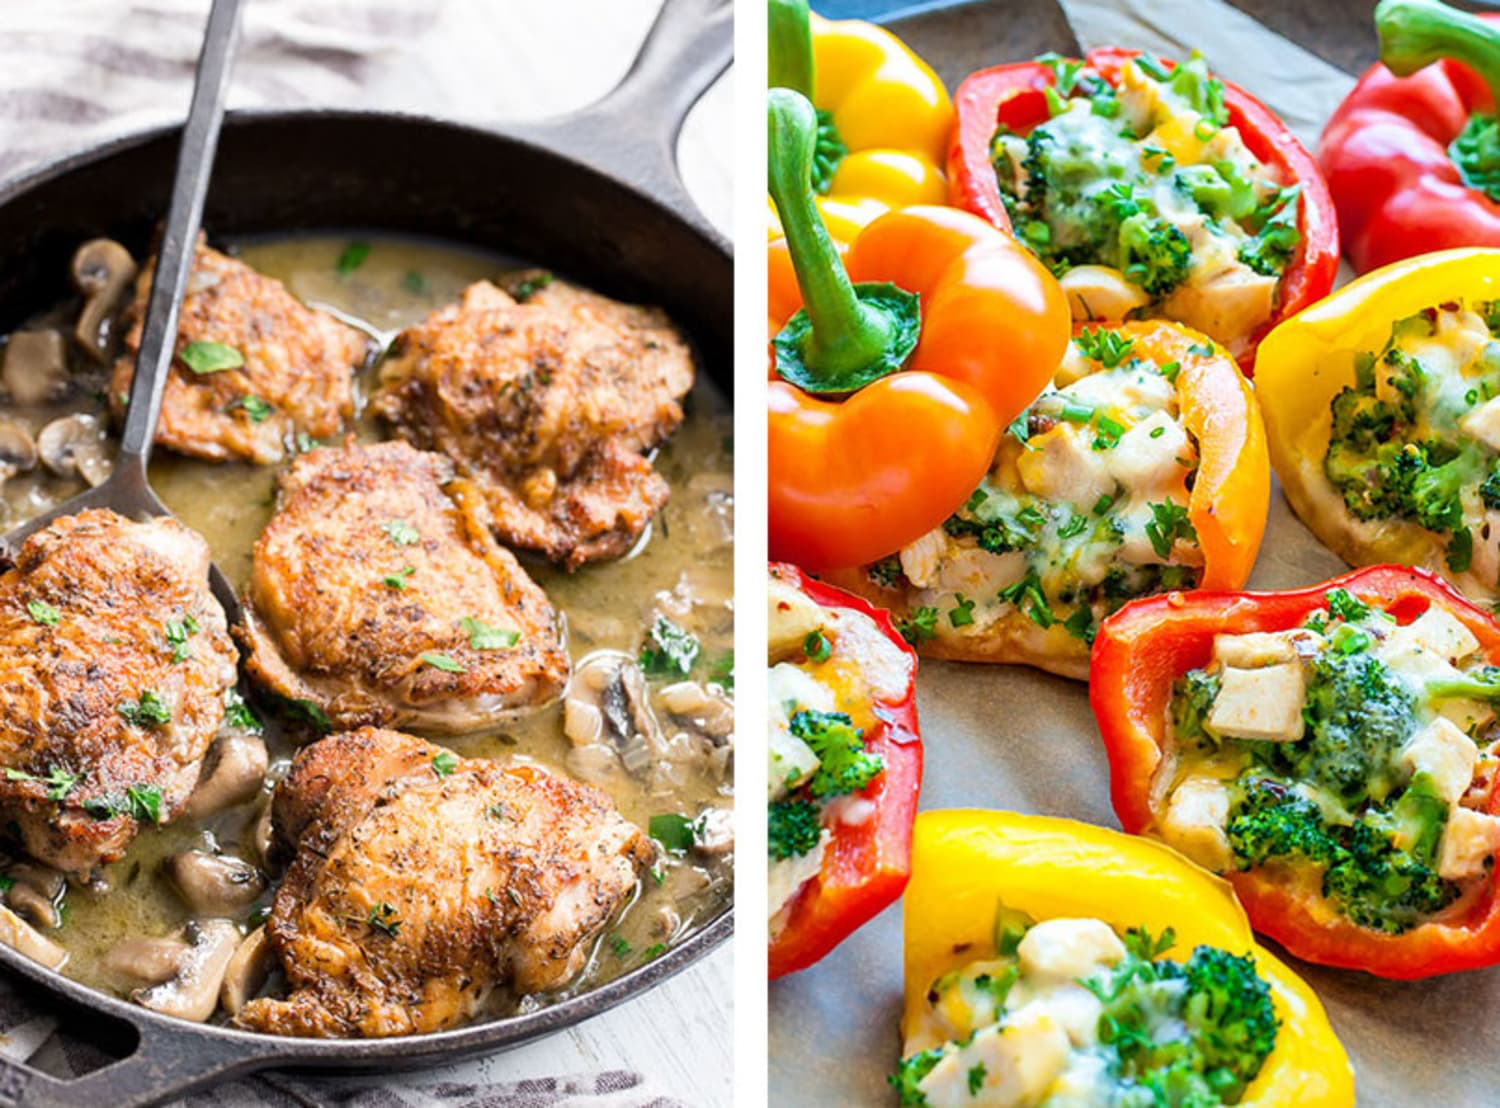 10 Delicious Keto-Friendly Chicken Recipes to Make Right Now — Recipe Roundup